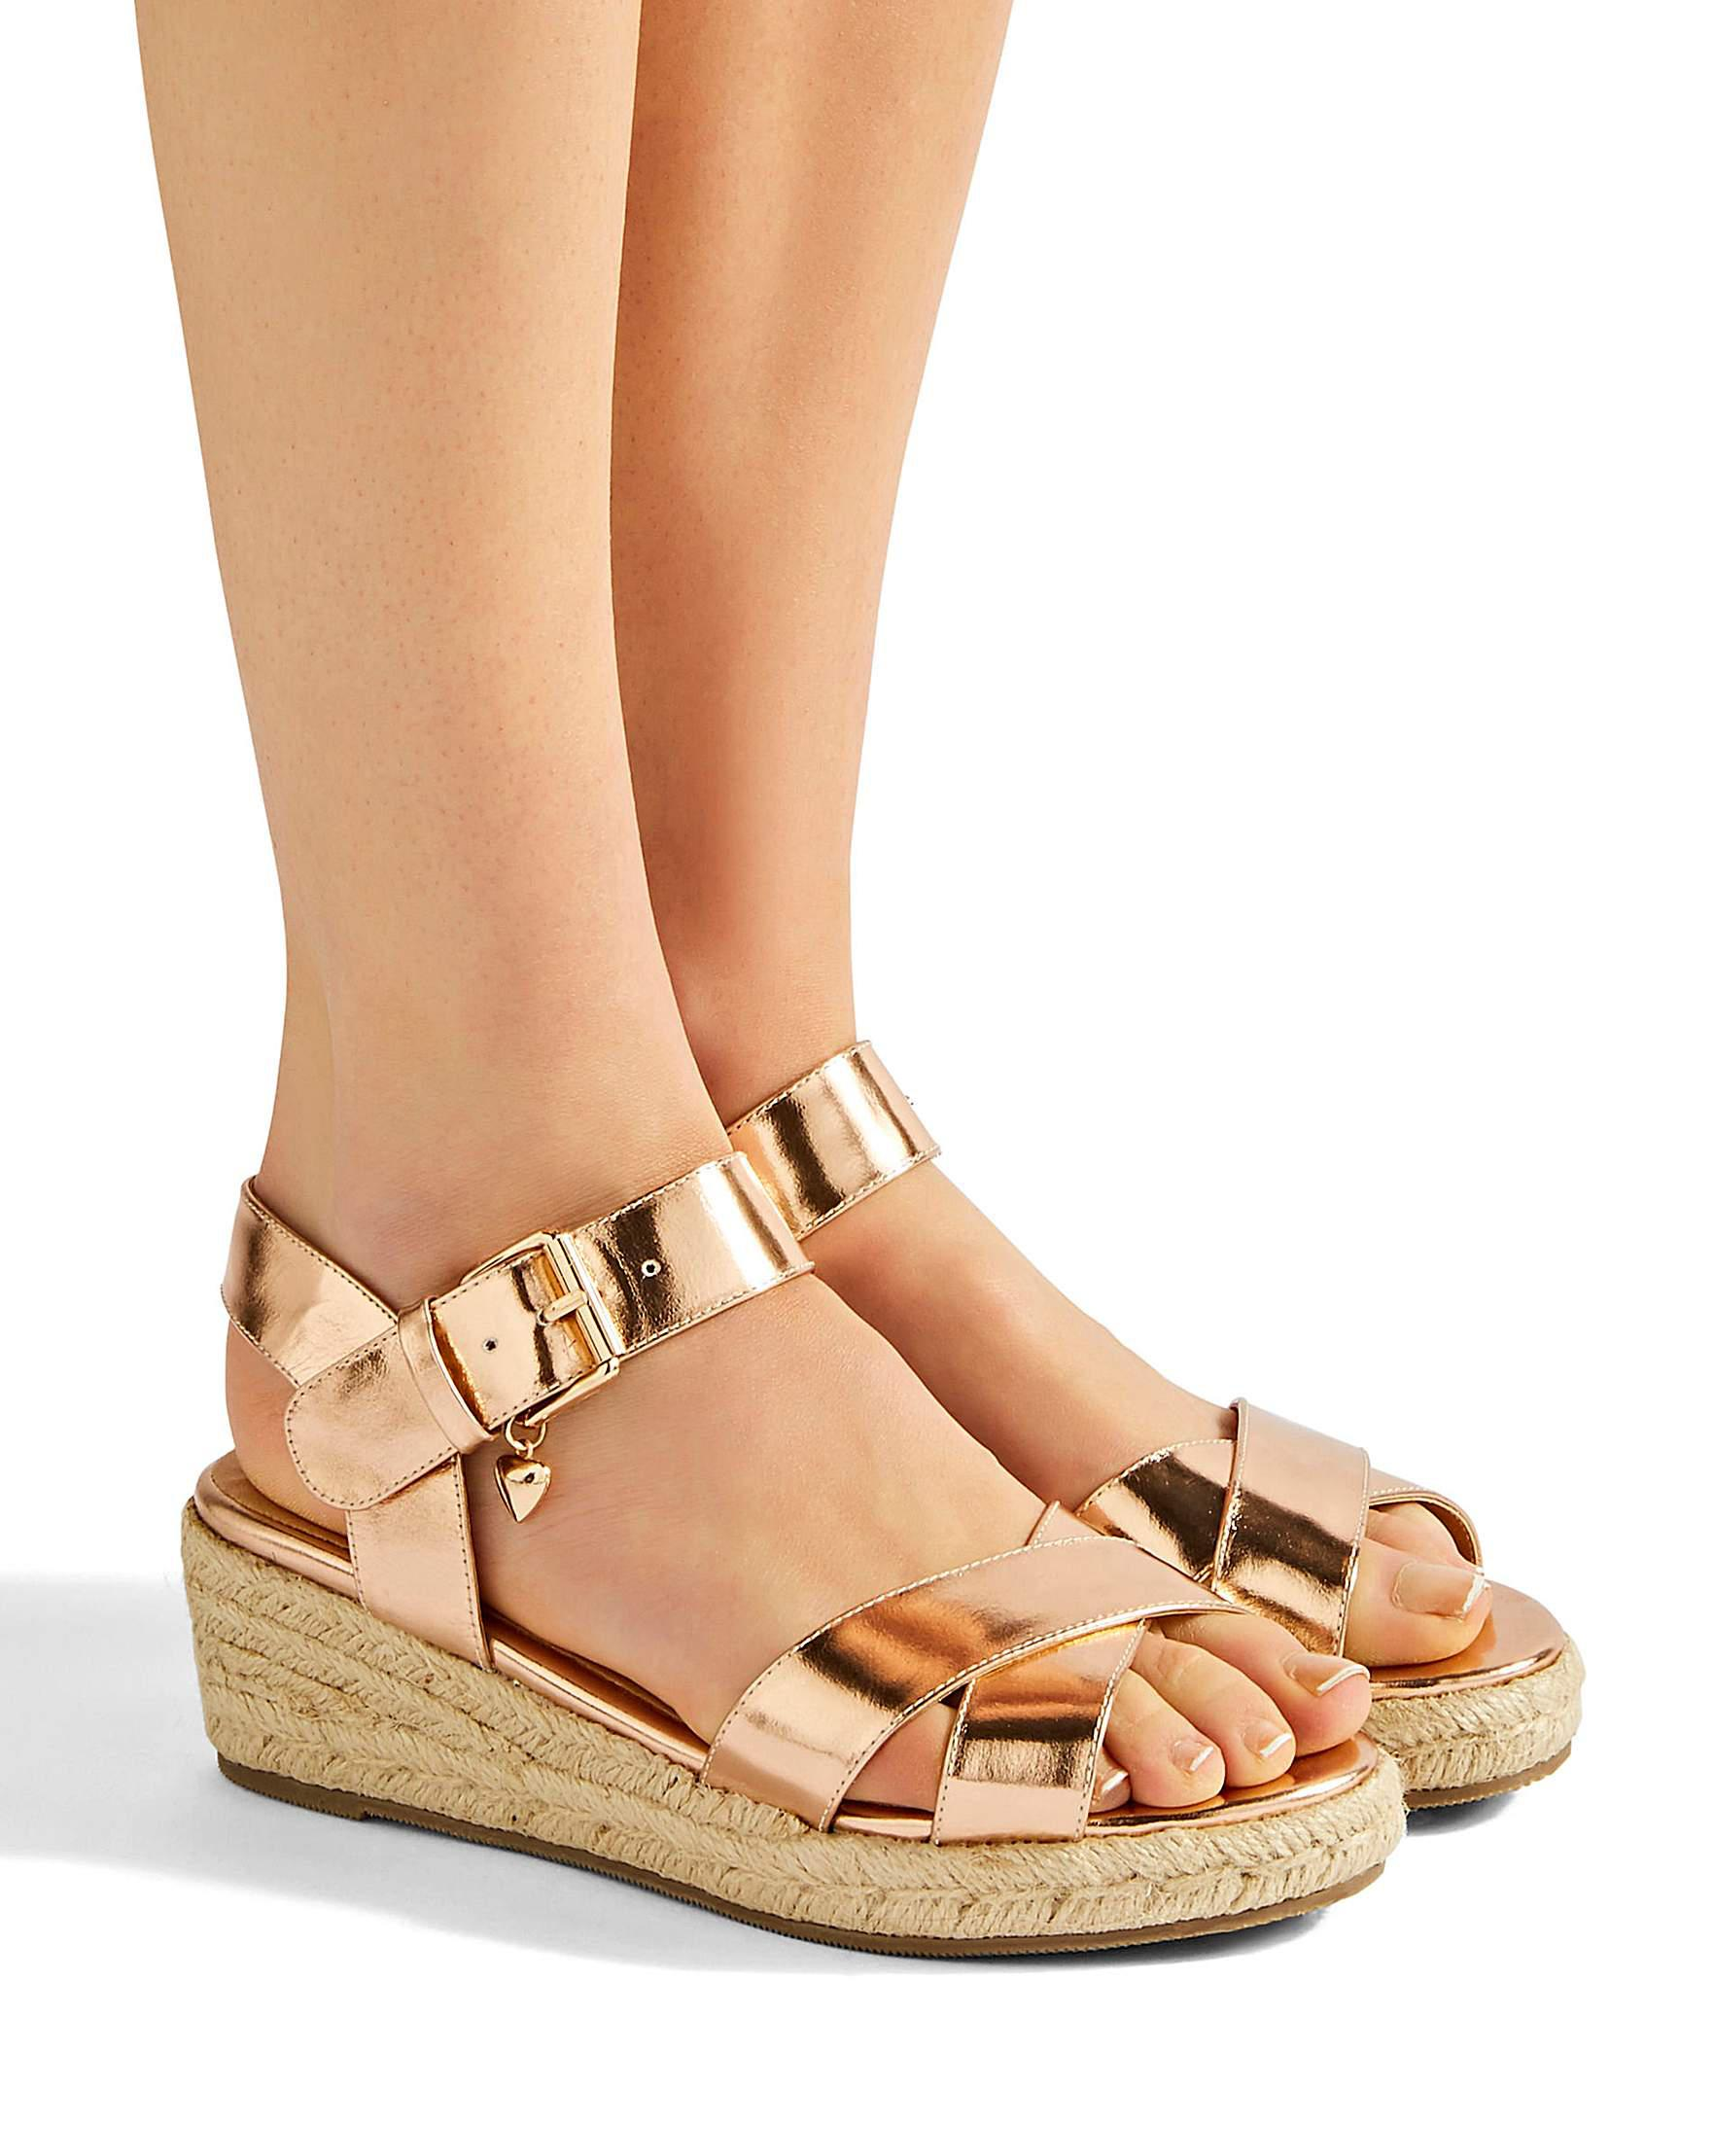 ff62834e2123 Simply Be Frankie Espadrille Wedges in Metallic - Lyst